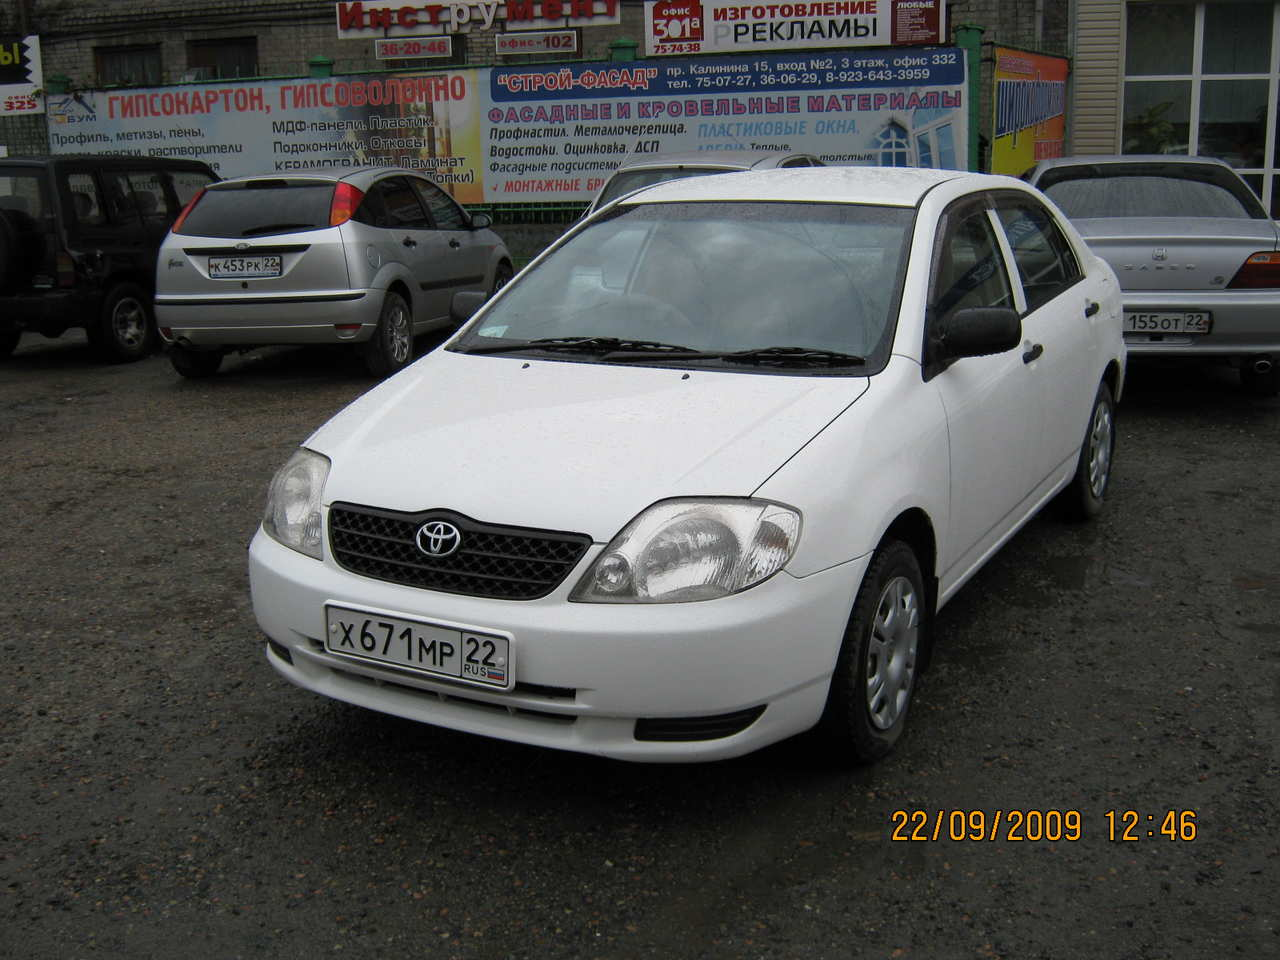 2002 toyota corolla pictures gasoline ff automatic for sale. Black Bedroom Furniture Sets. Home Design Ideas